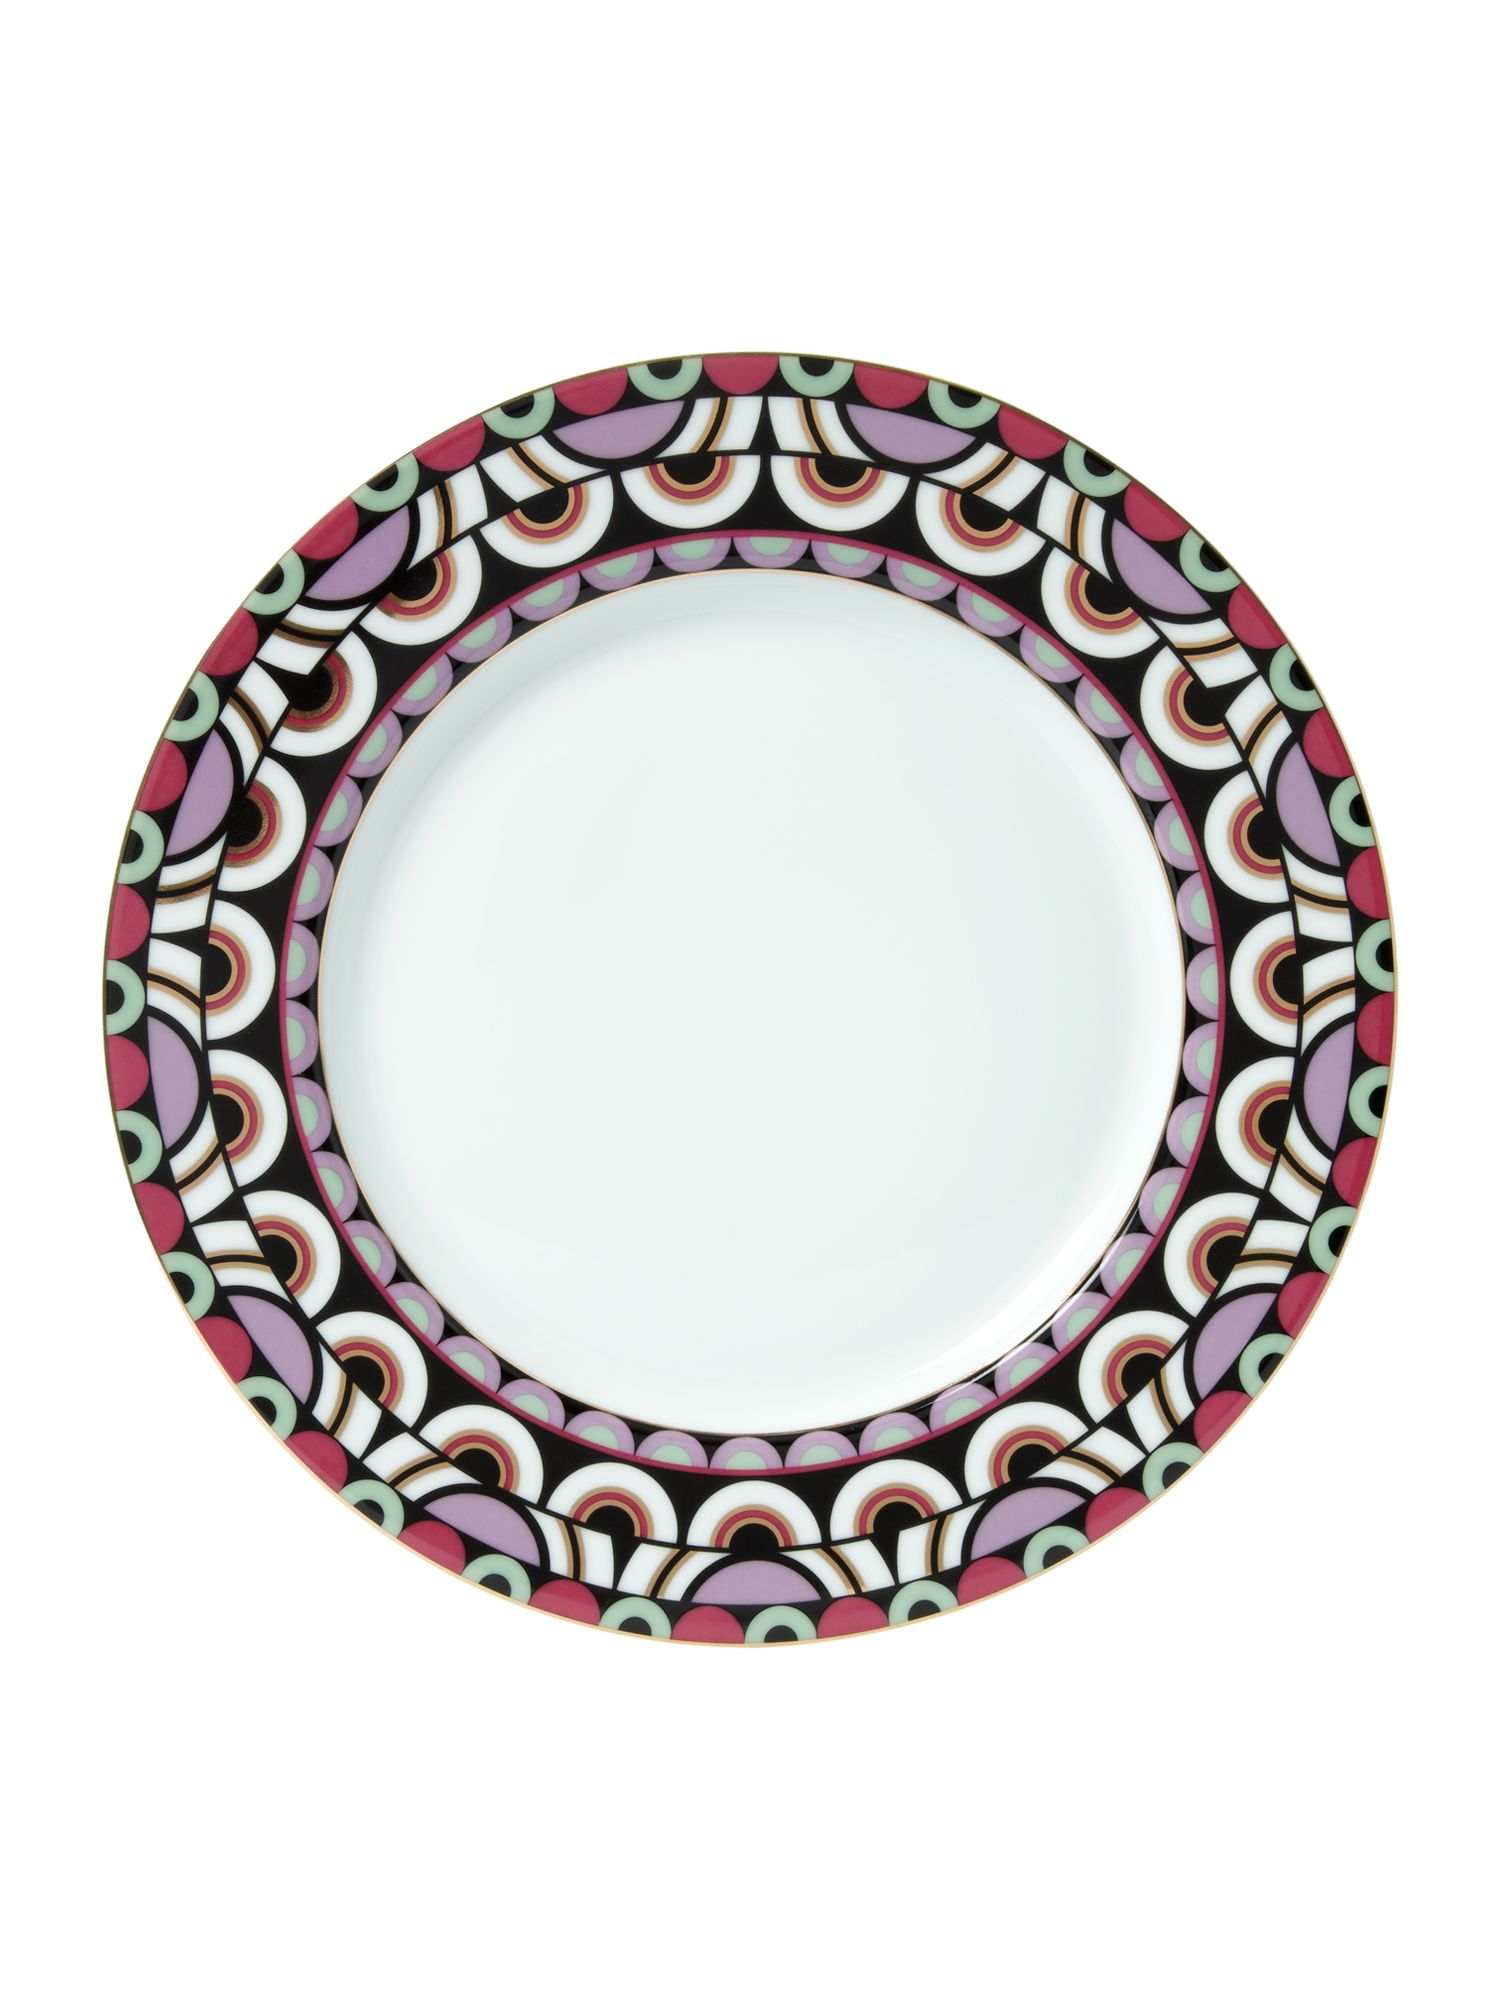 Persia Jewels dinner plate